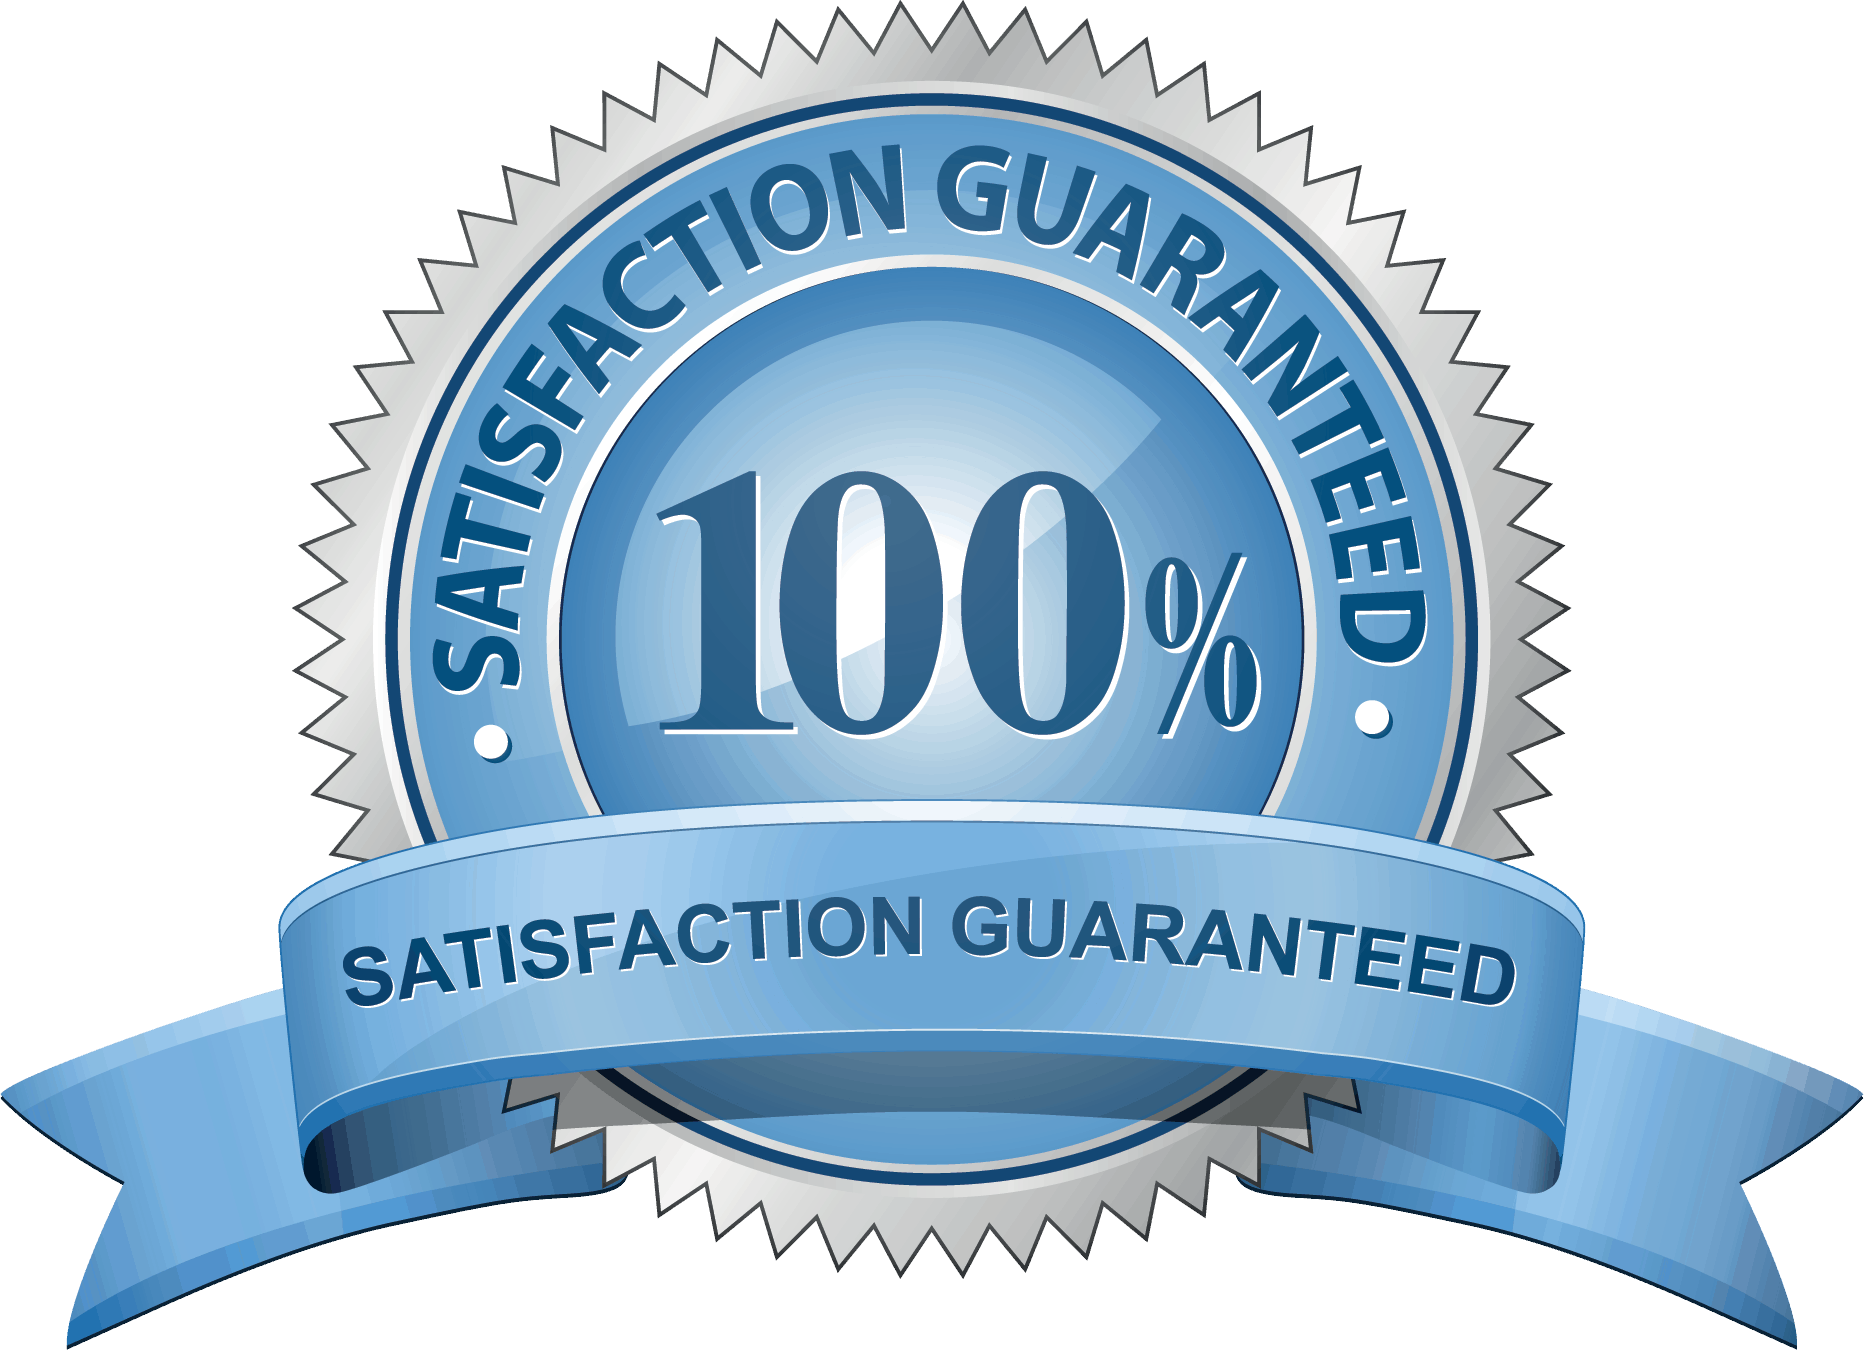 Ecommerce Development Company With Satisfaction Guarentee